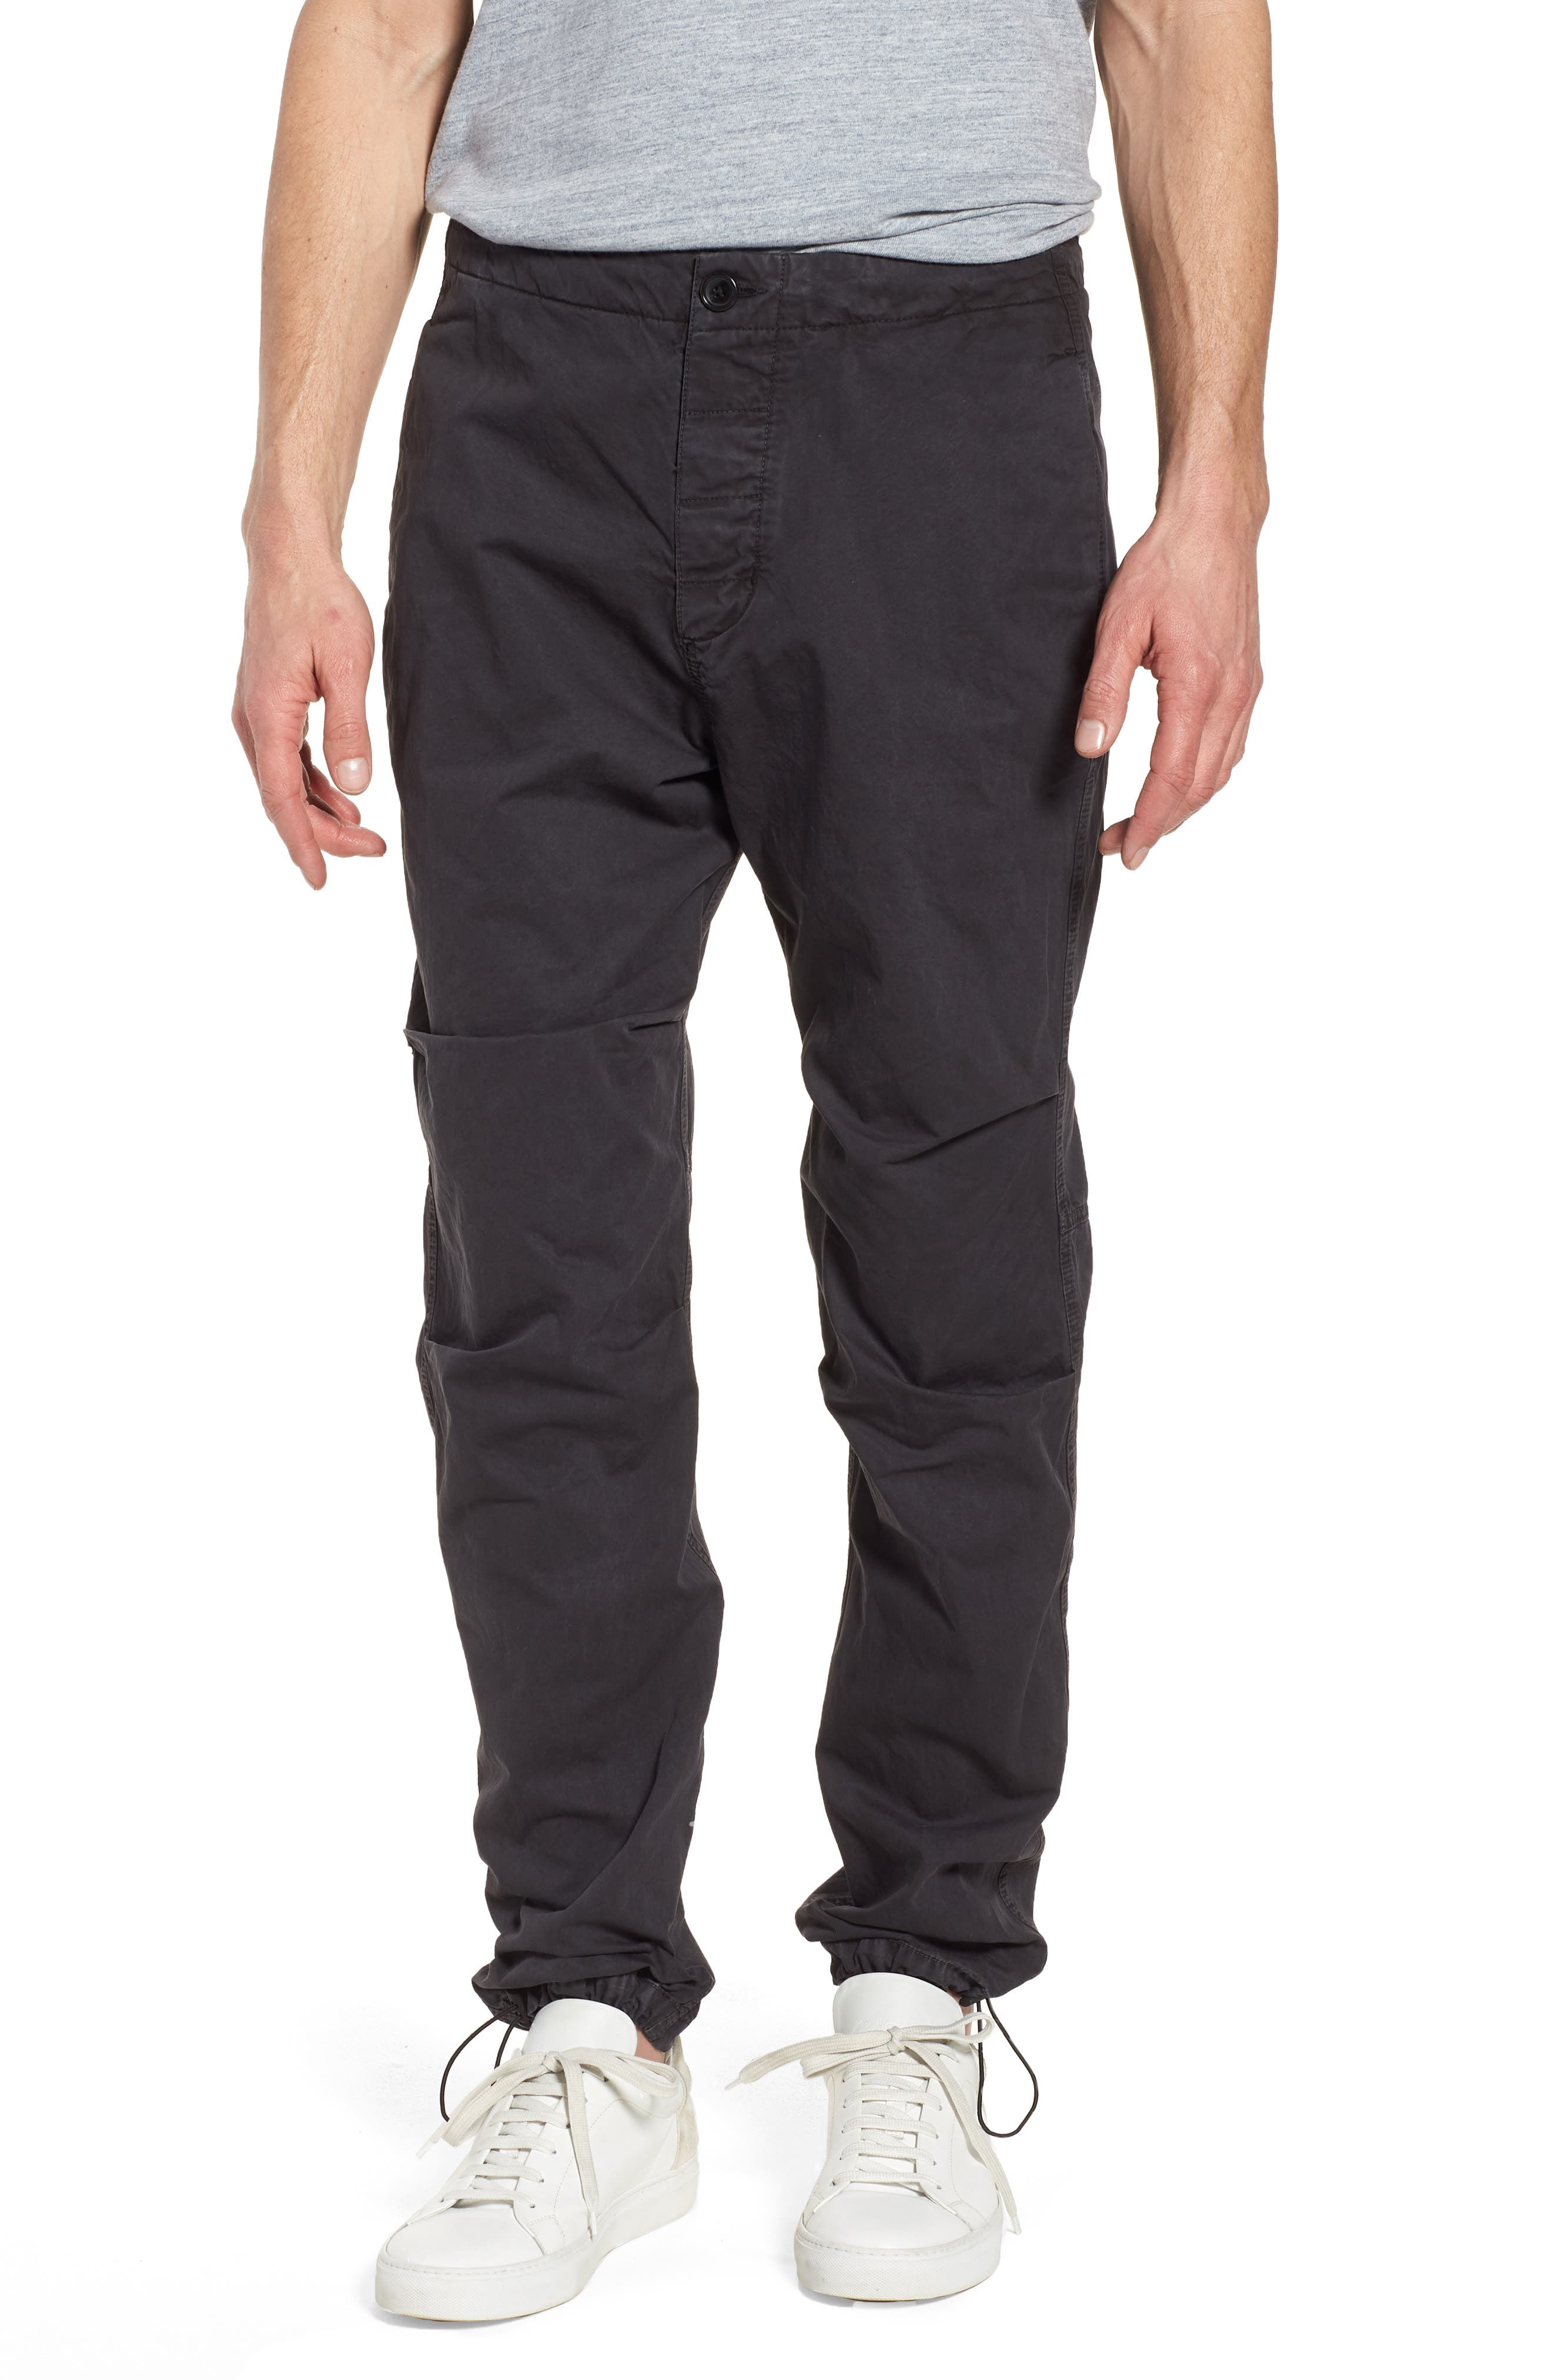 James Perse Relaxed Fit Cotton Twill Pants